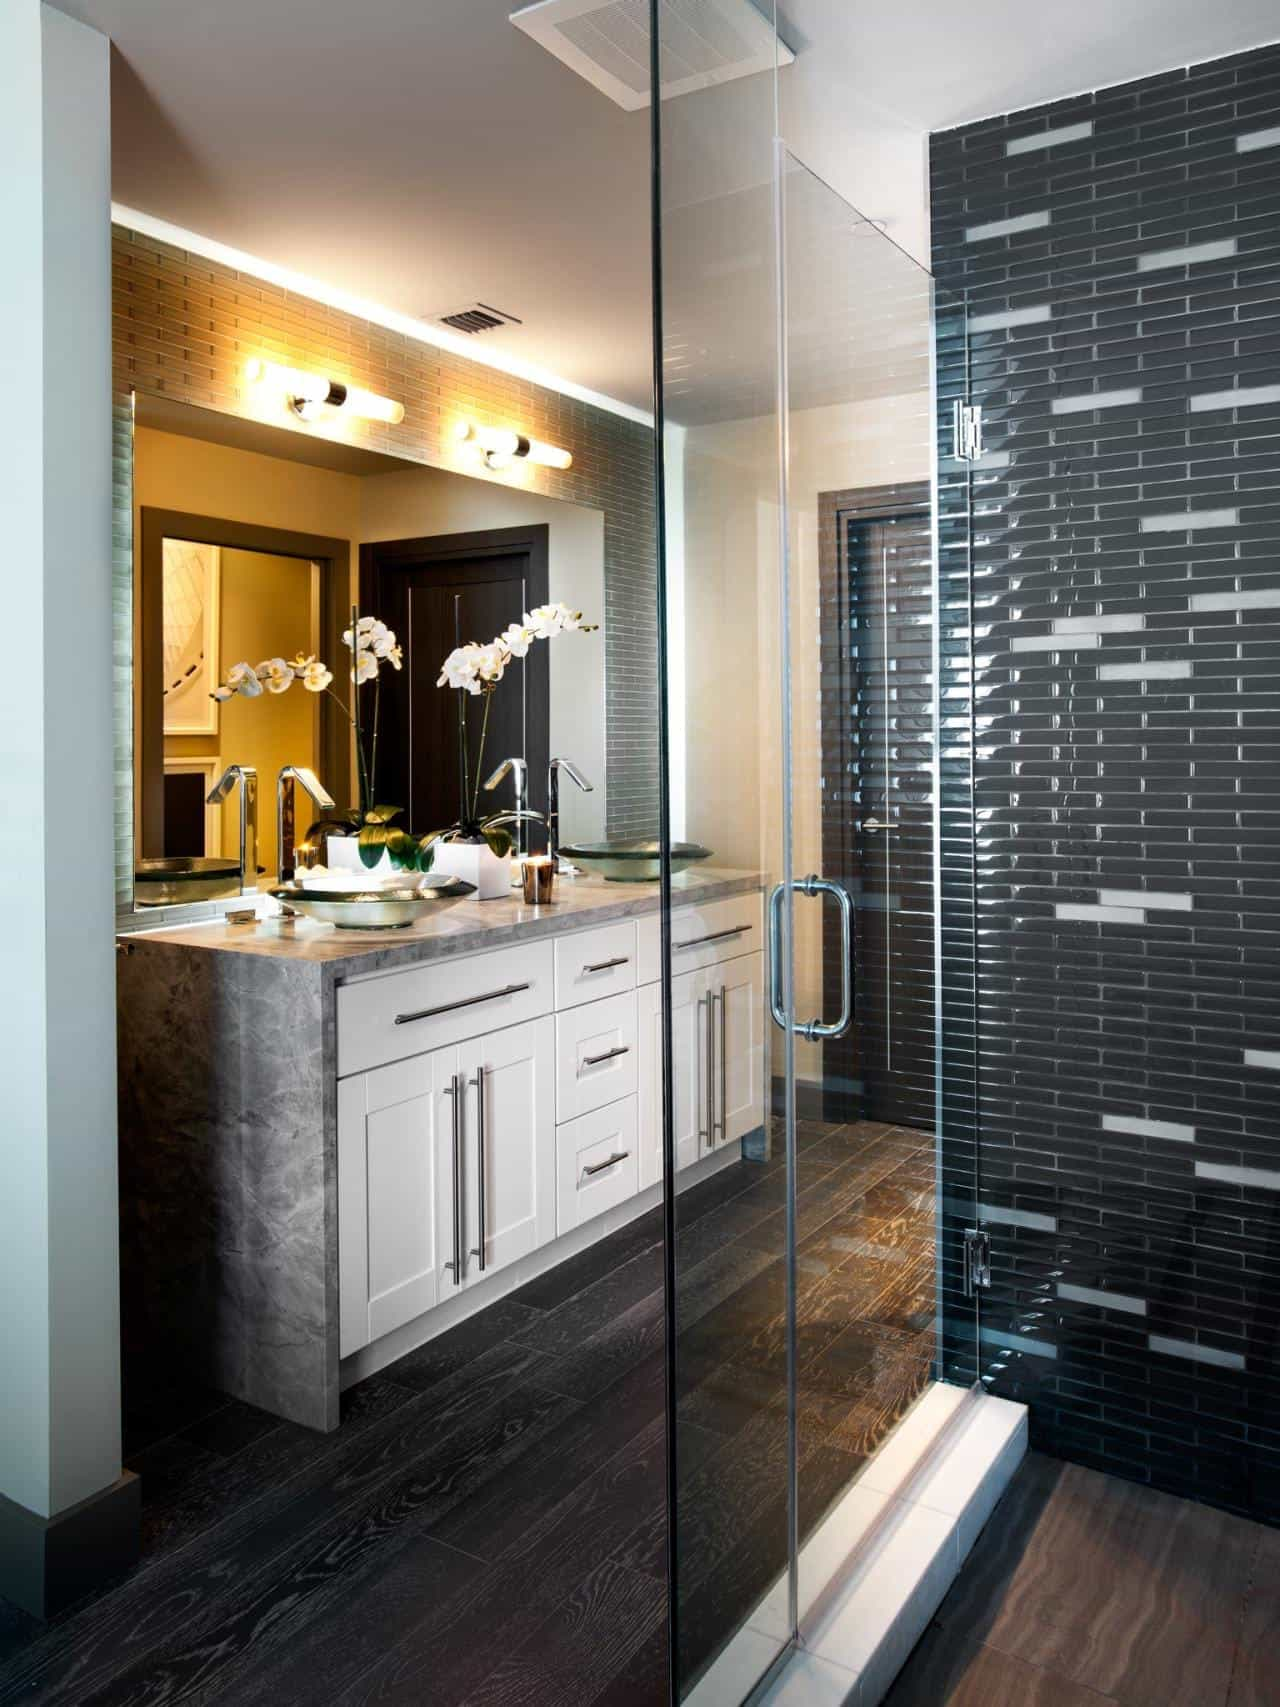 Contemporary Master Bathroom With Hardwood Floor And Black Ceramic Tiles (View 4 of 10)